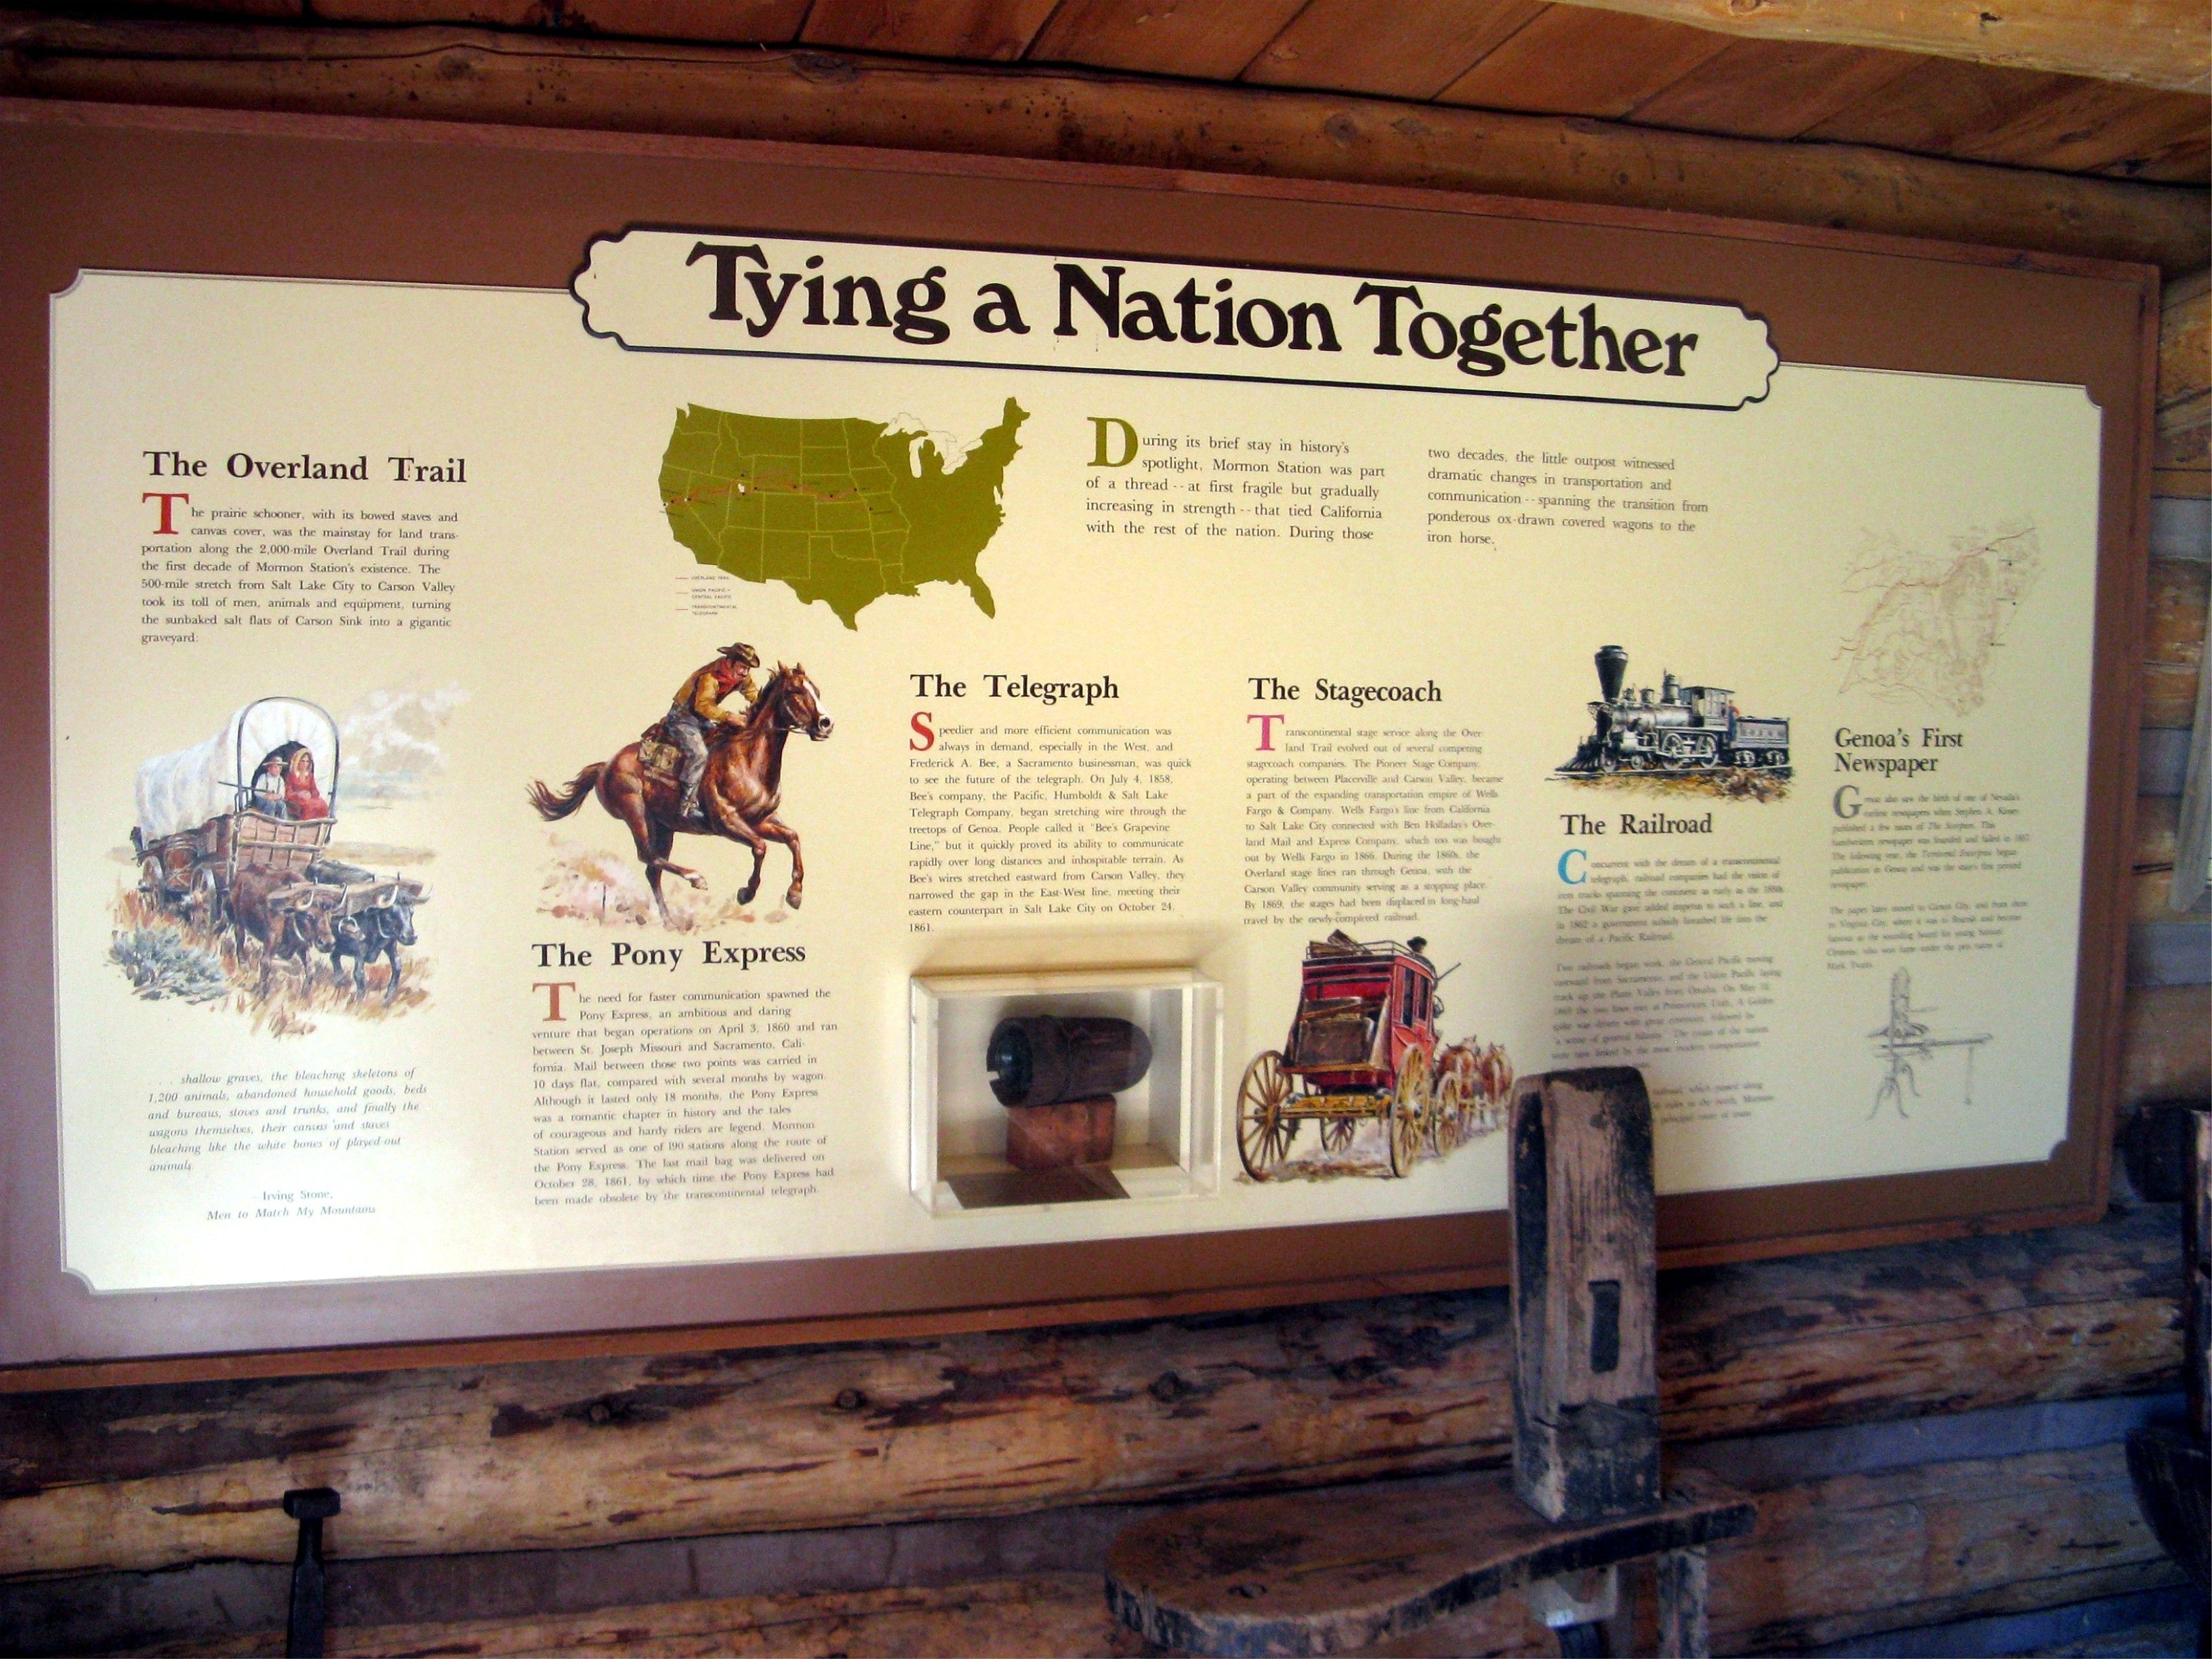 Tying a Nation Together